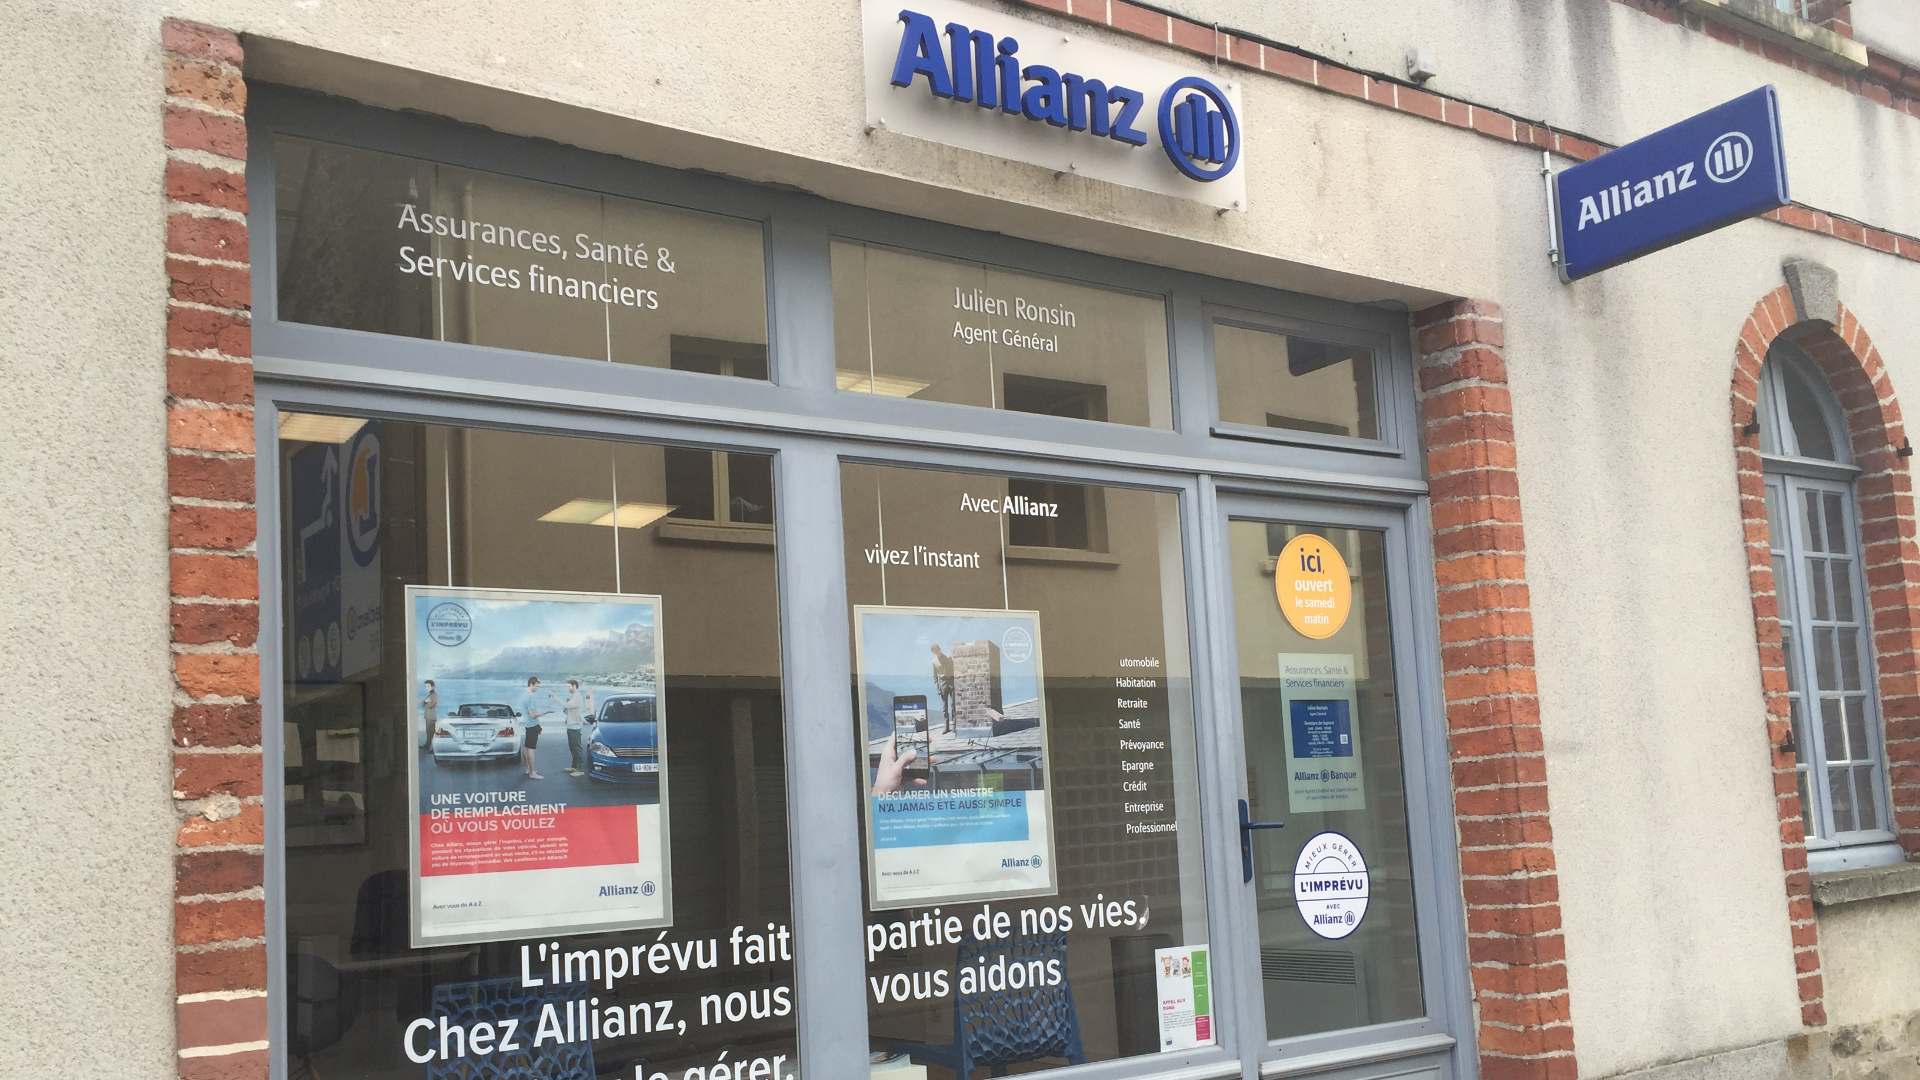 Allianz Vitre - Julien RONSIN